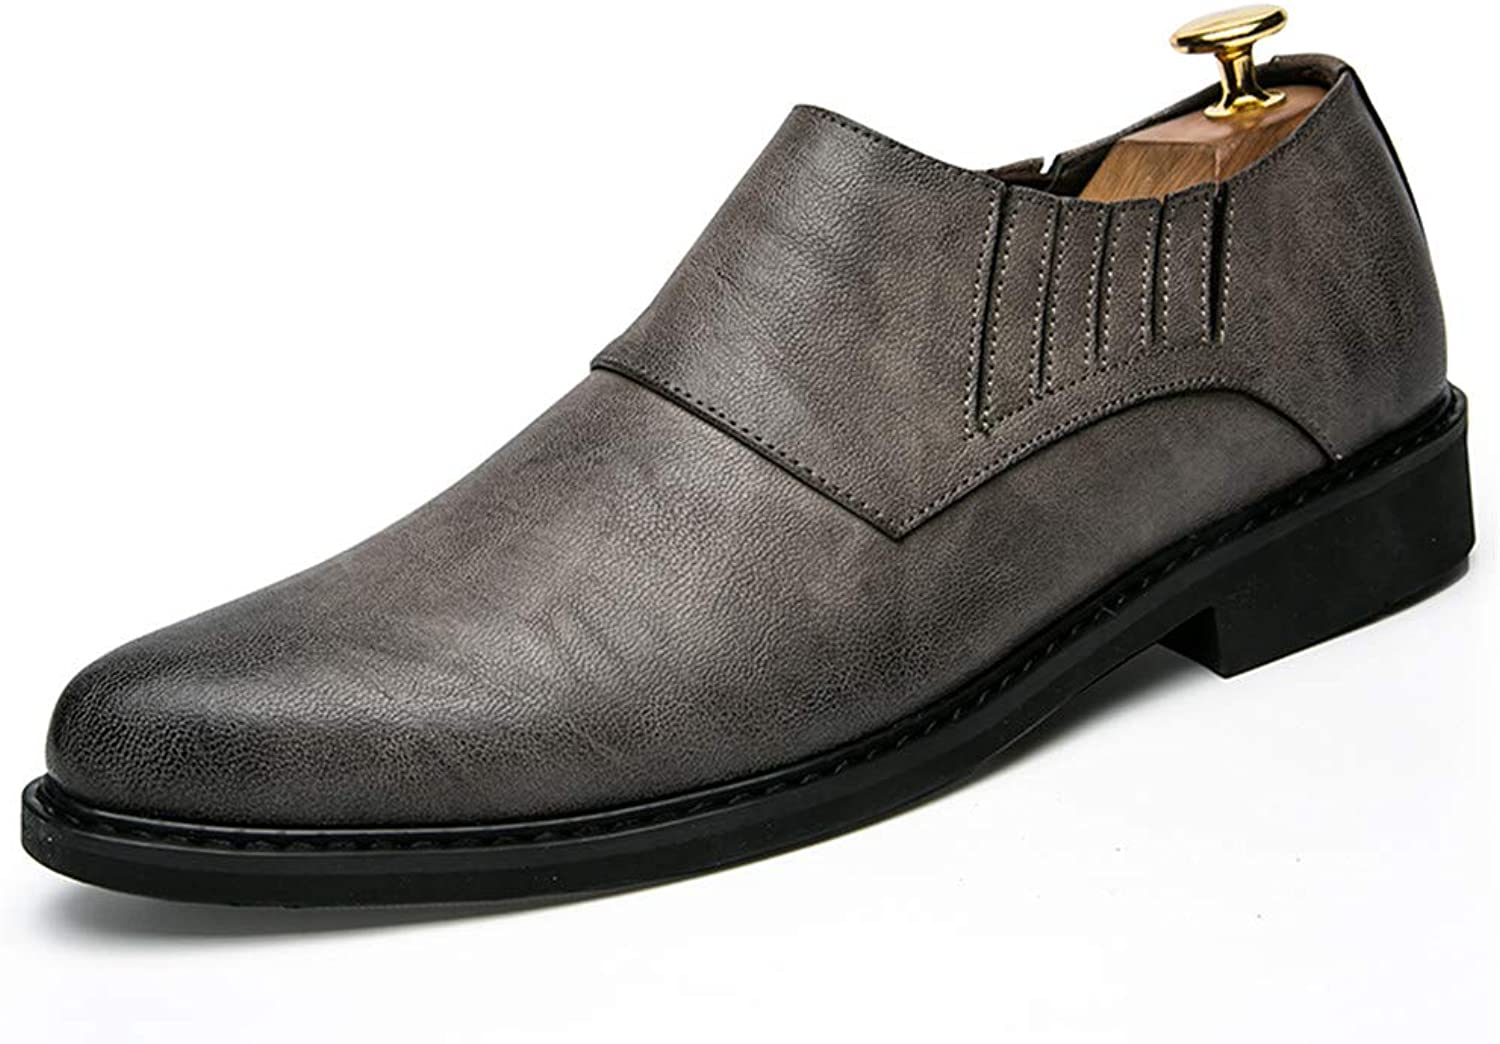 Z.L.F shoes Men's Business Oxford Fashion British Comfortable and Wear-Resistant Formal shoes Leather shoes